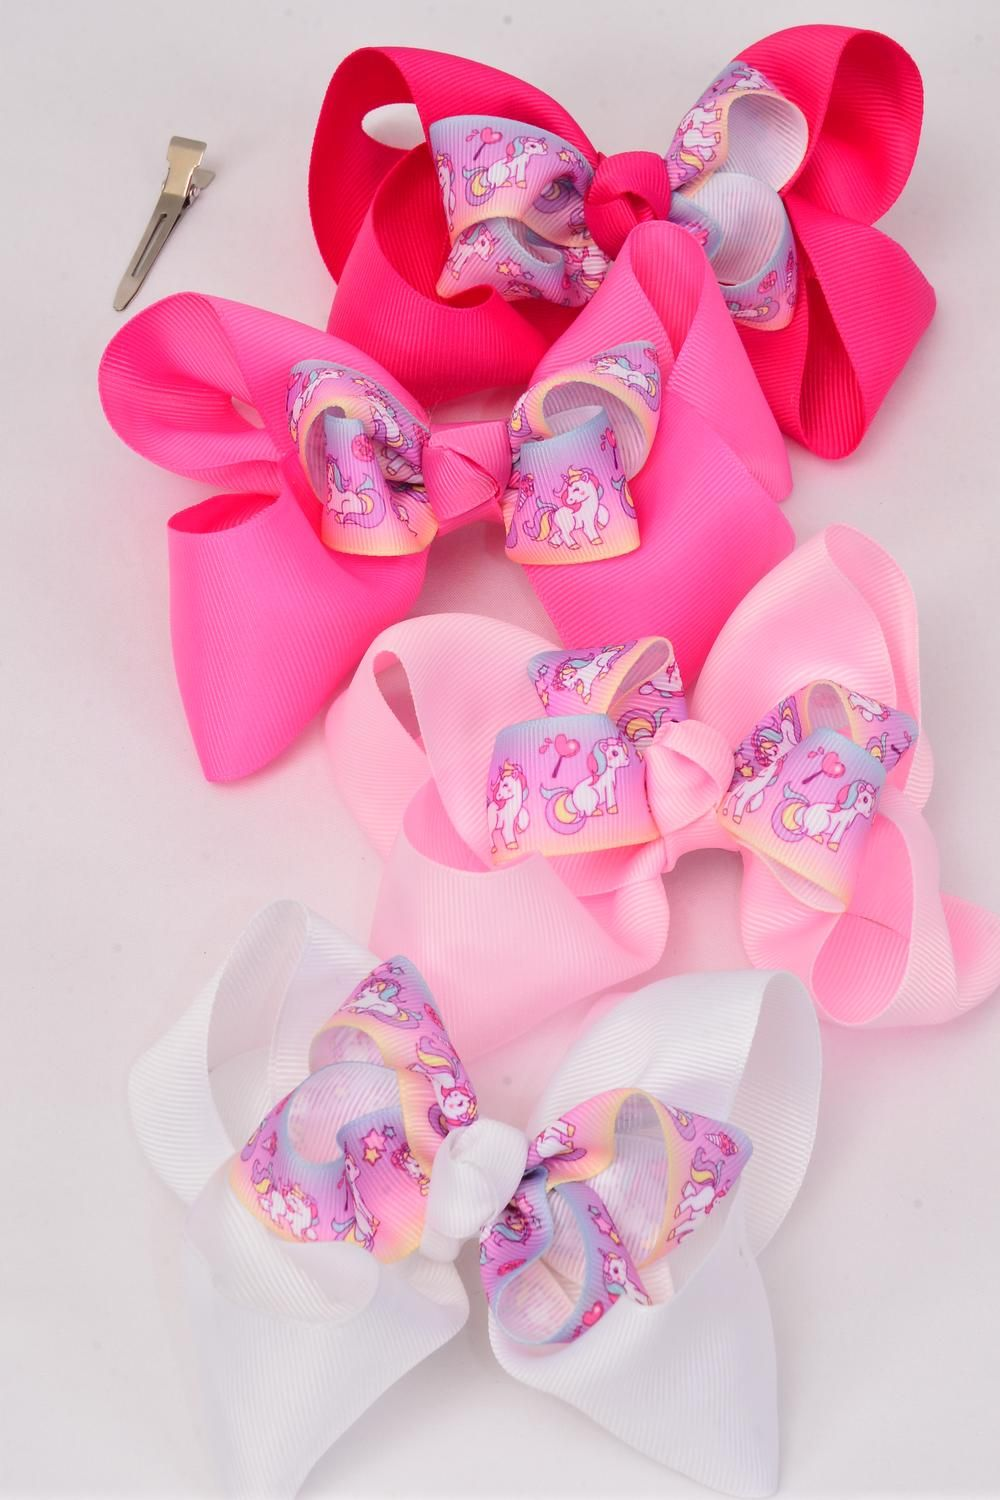 "Hair Bow Rainbow Baby Unicorn Grosgrain Bowtie Pink Mix/DZ **Pink Mix** Alligator Clip,Bow-6""x 5"",3 of each Color Asst,Clip Strip & UPC Code"